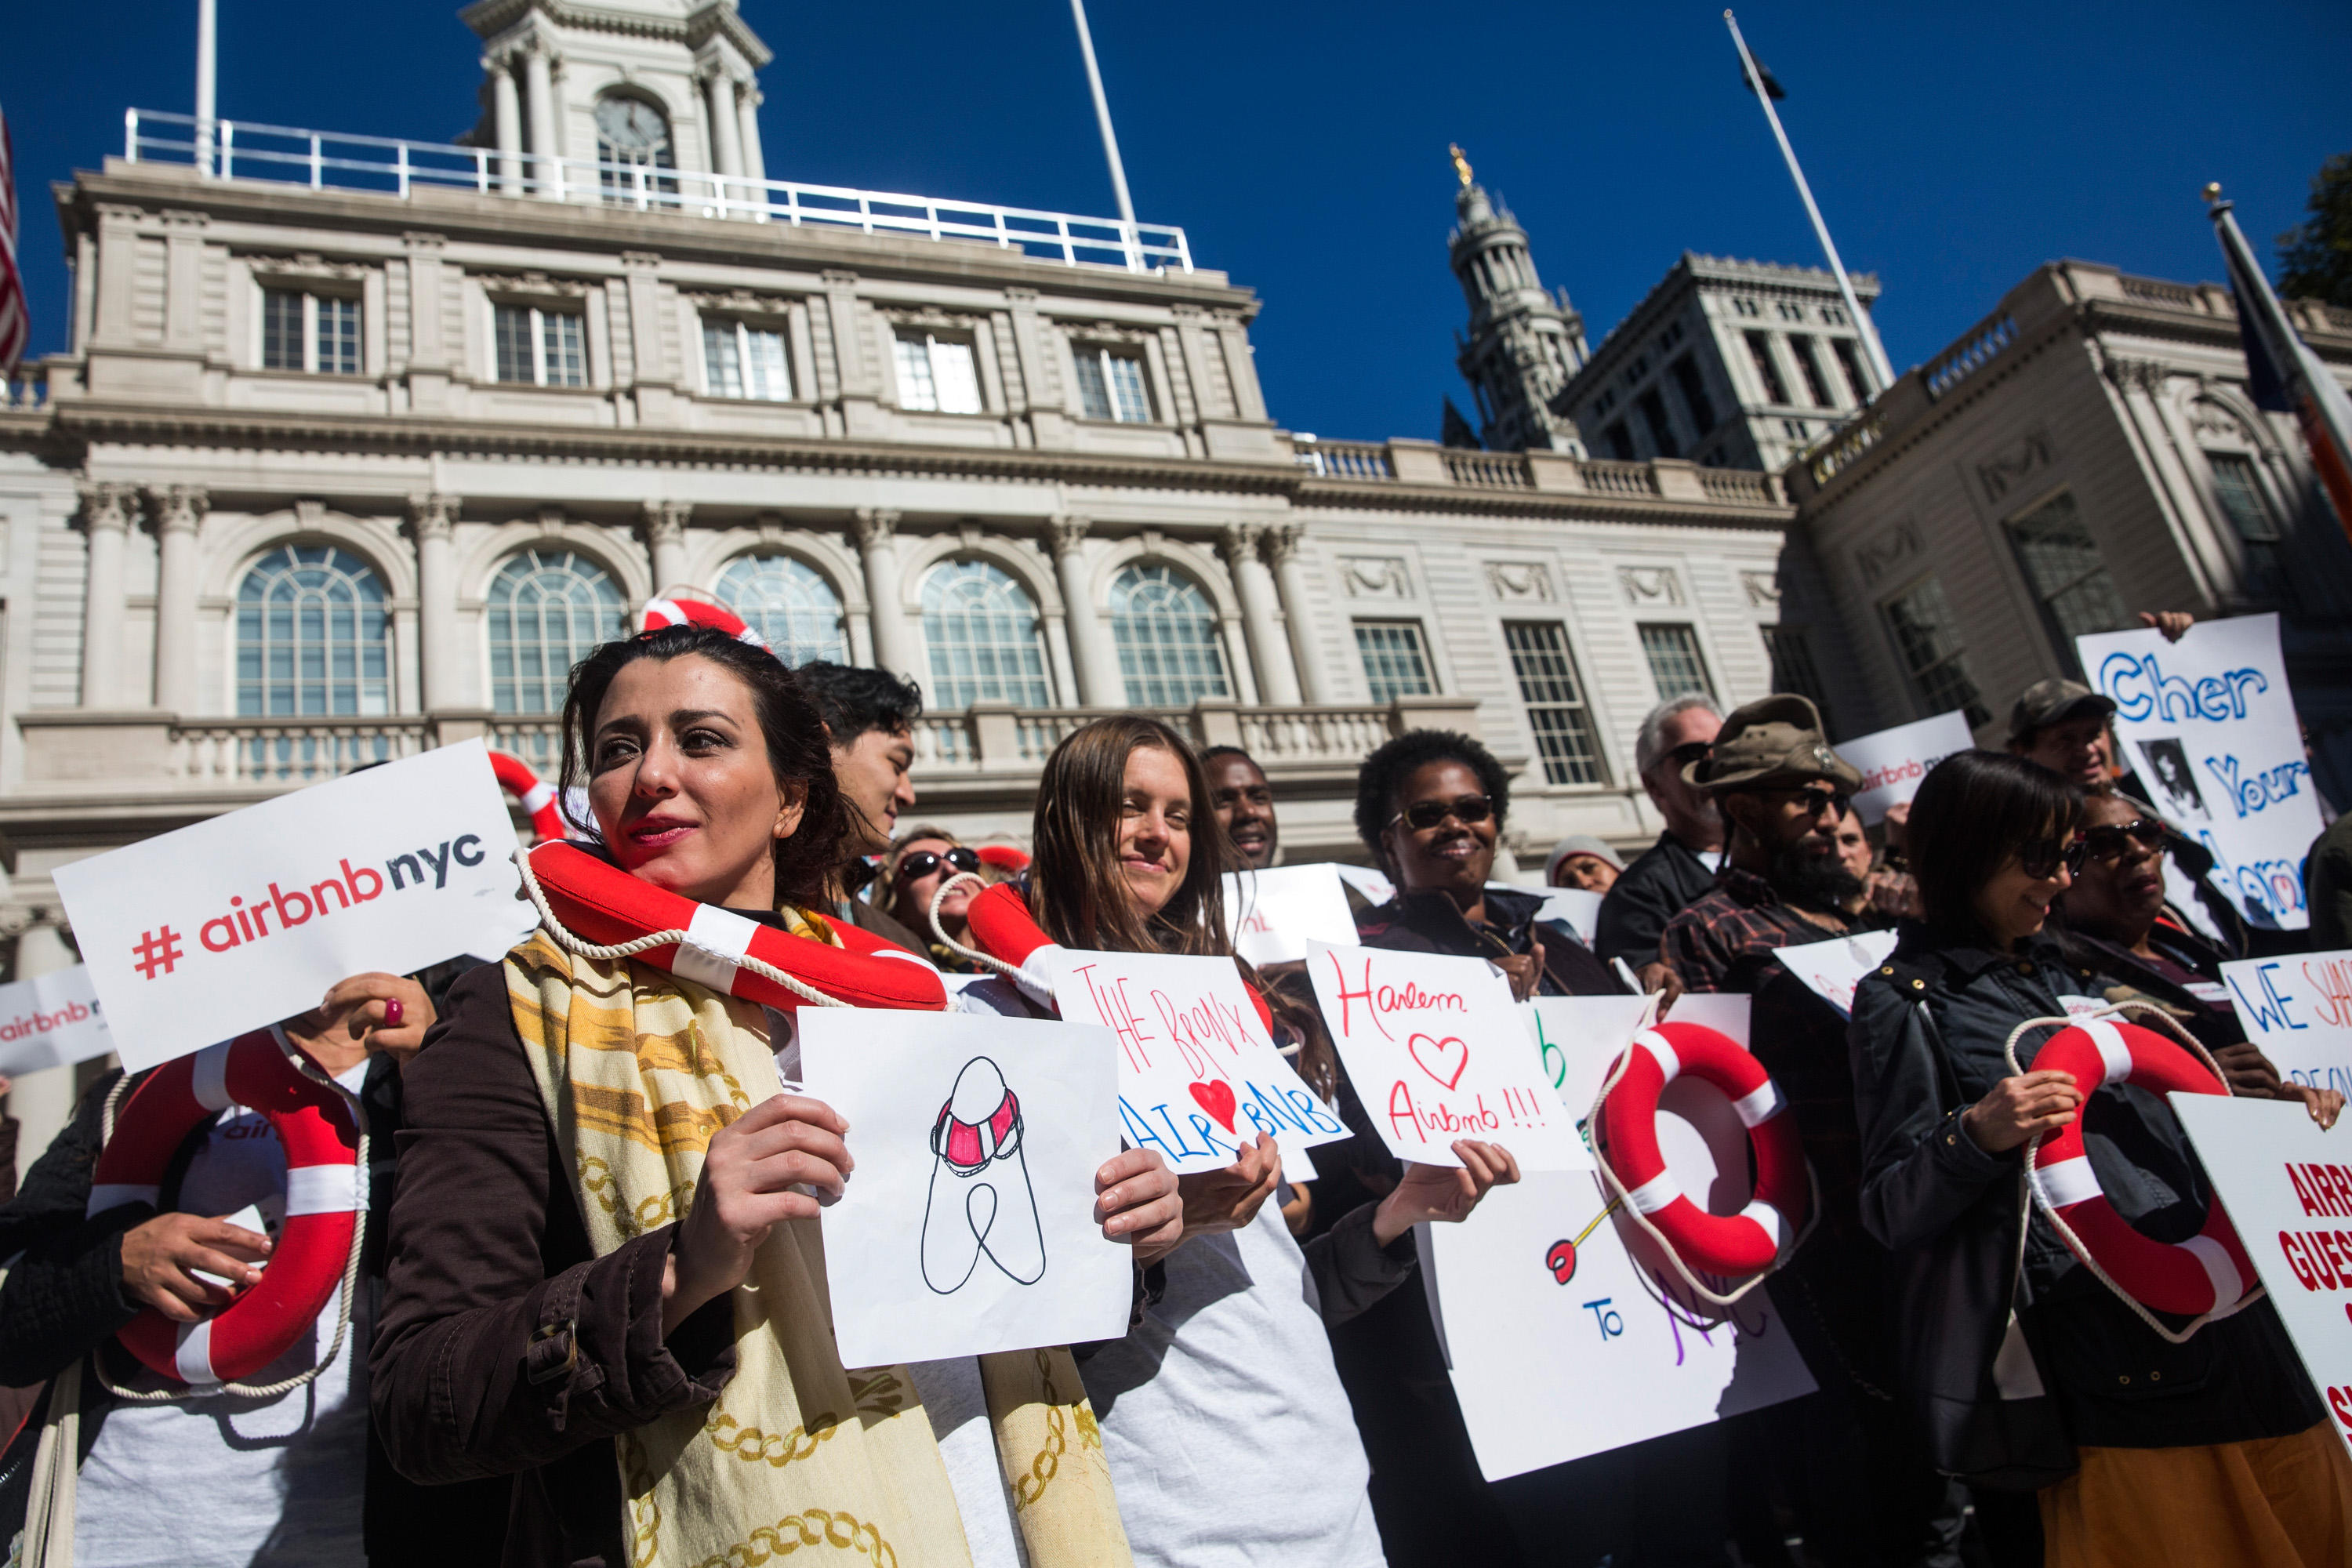 NYC Airbnb Hosts Rally At City Hall As City Debates Guidelines